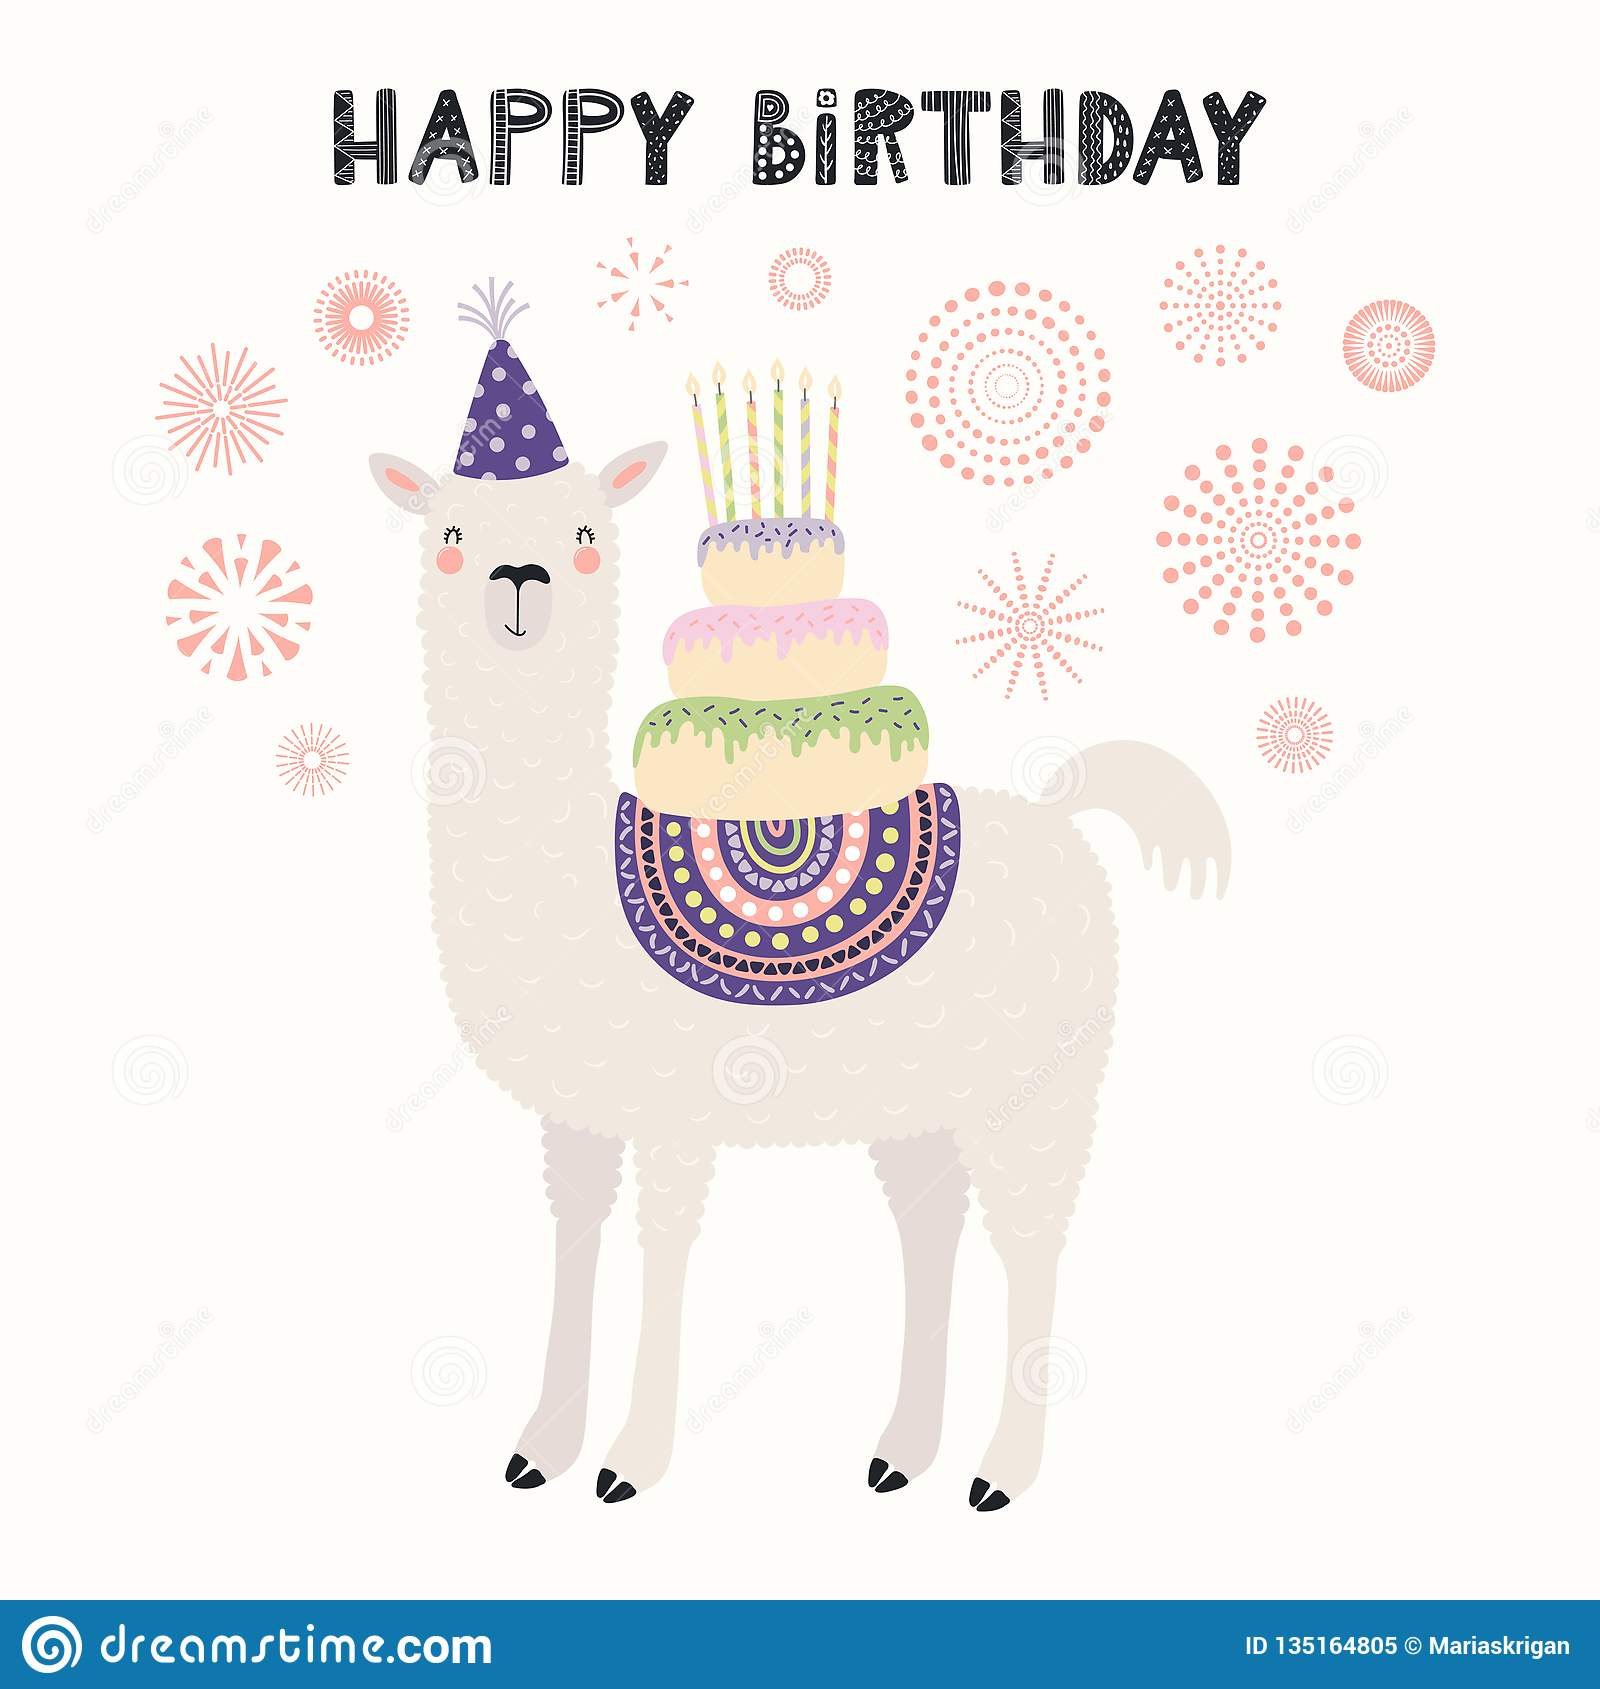 Hand Drawn Card With Cute Llama In A Party Hat Carrying Cake Candles Fireworks Text Happy Birthday Vector Illustration